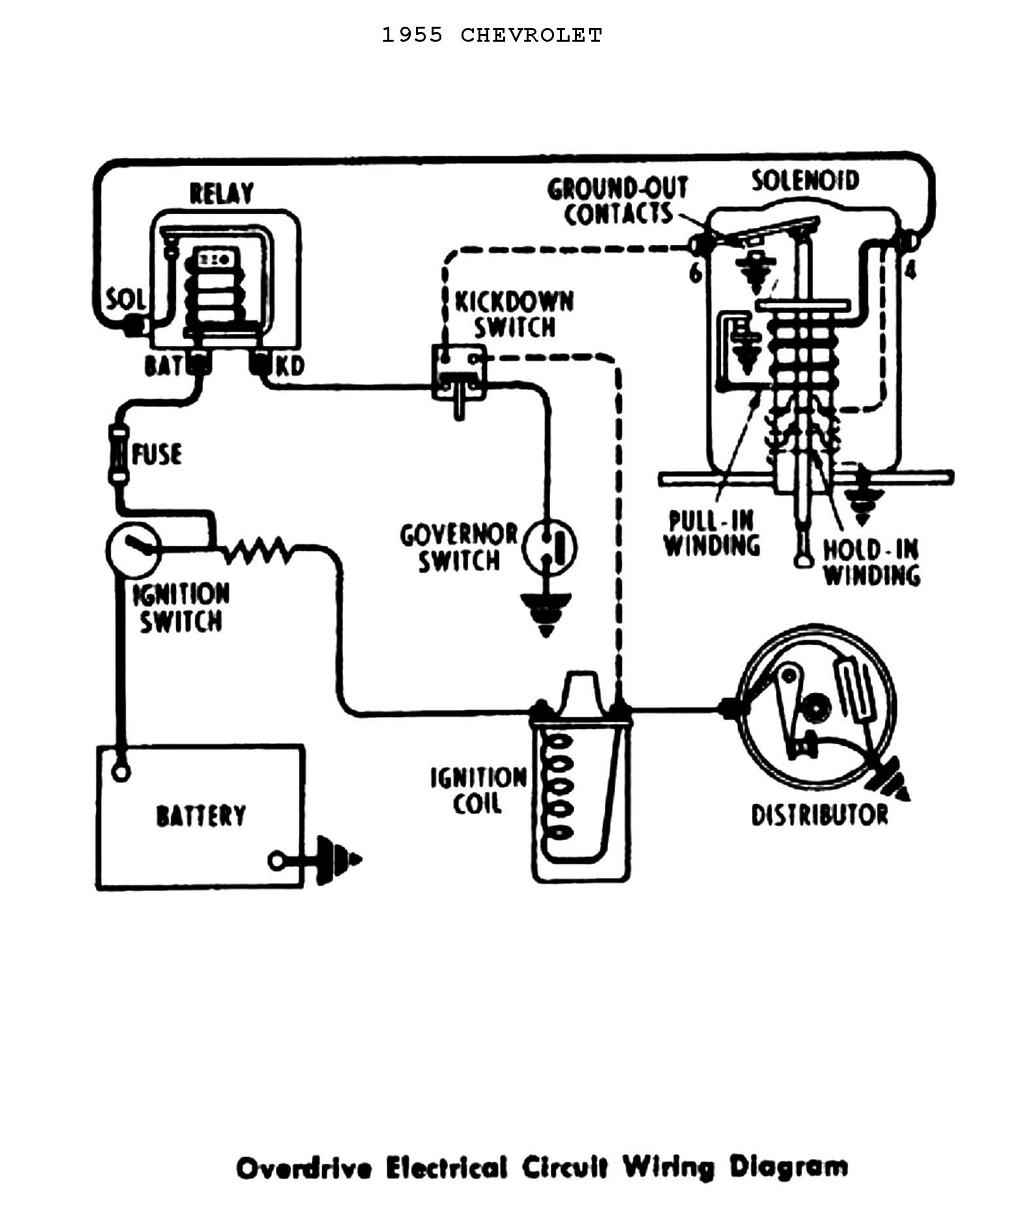 1999 5 3 liter chevy wiring diagram chevy hei distributor wiring diagram | free wiring diagram chevy wiring diagram #9